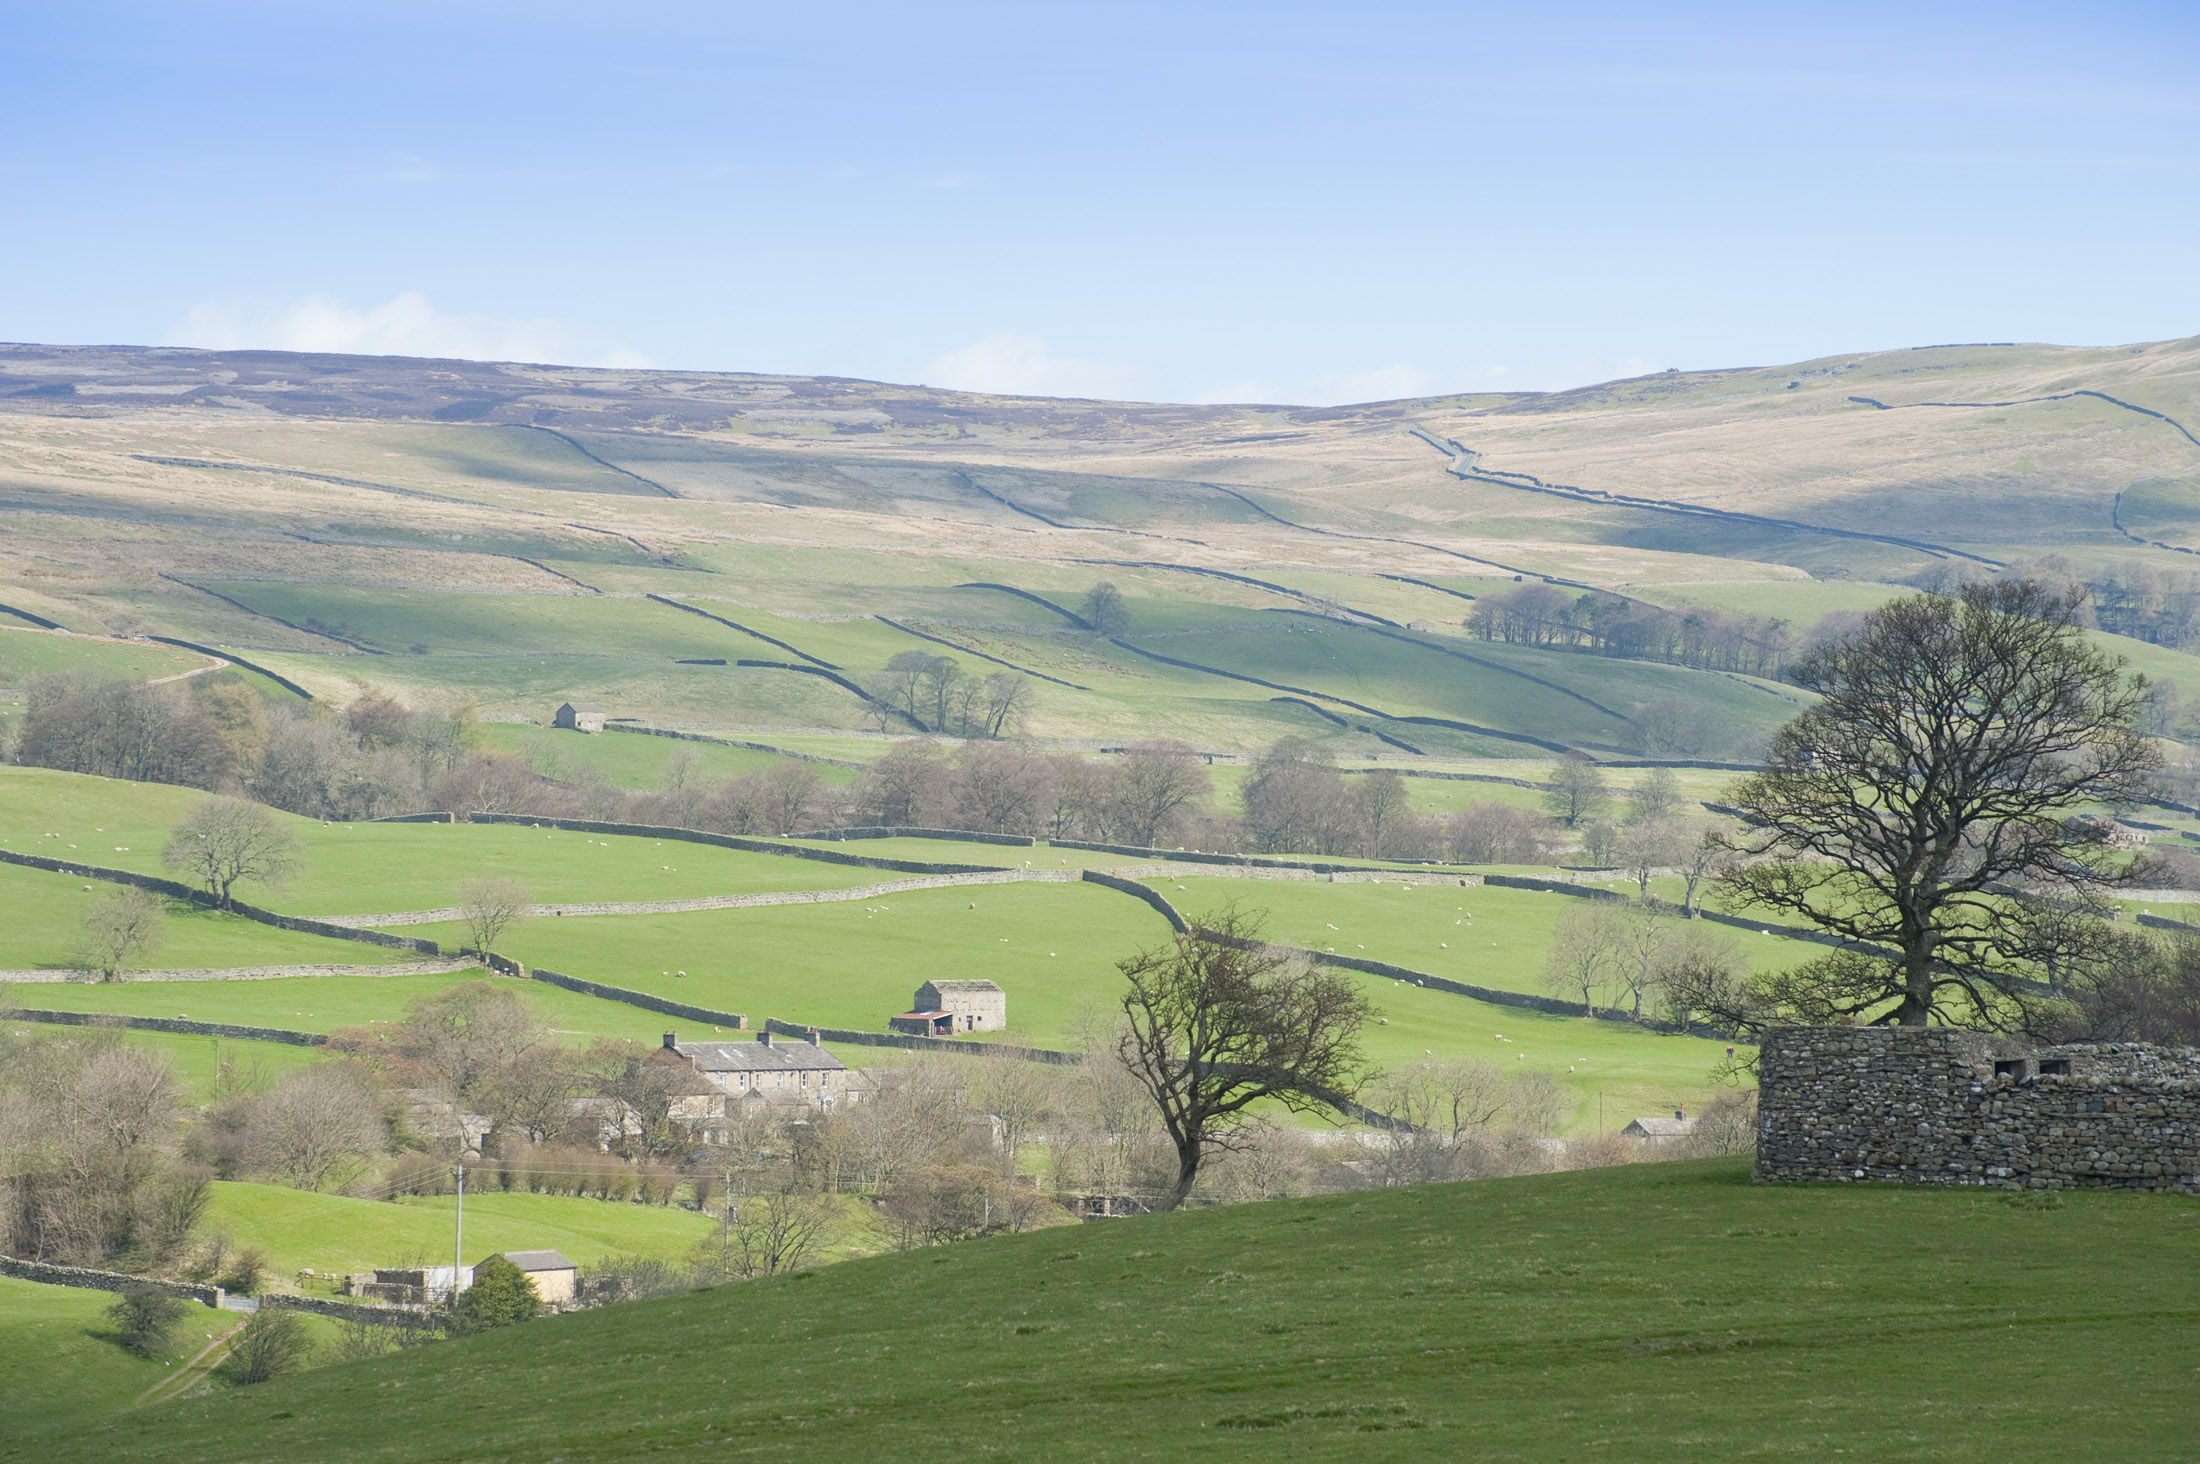 Free Stock photo of wensleydale landscape  Photoeverywhere